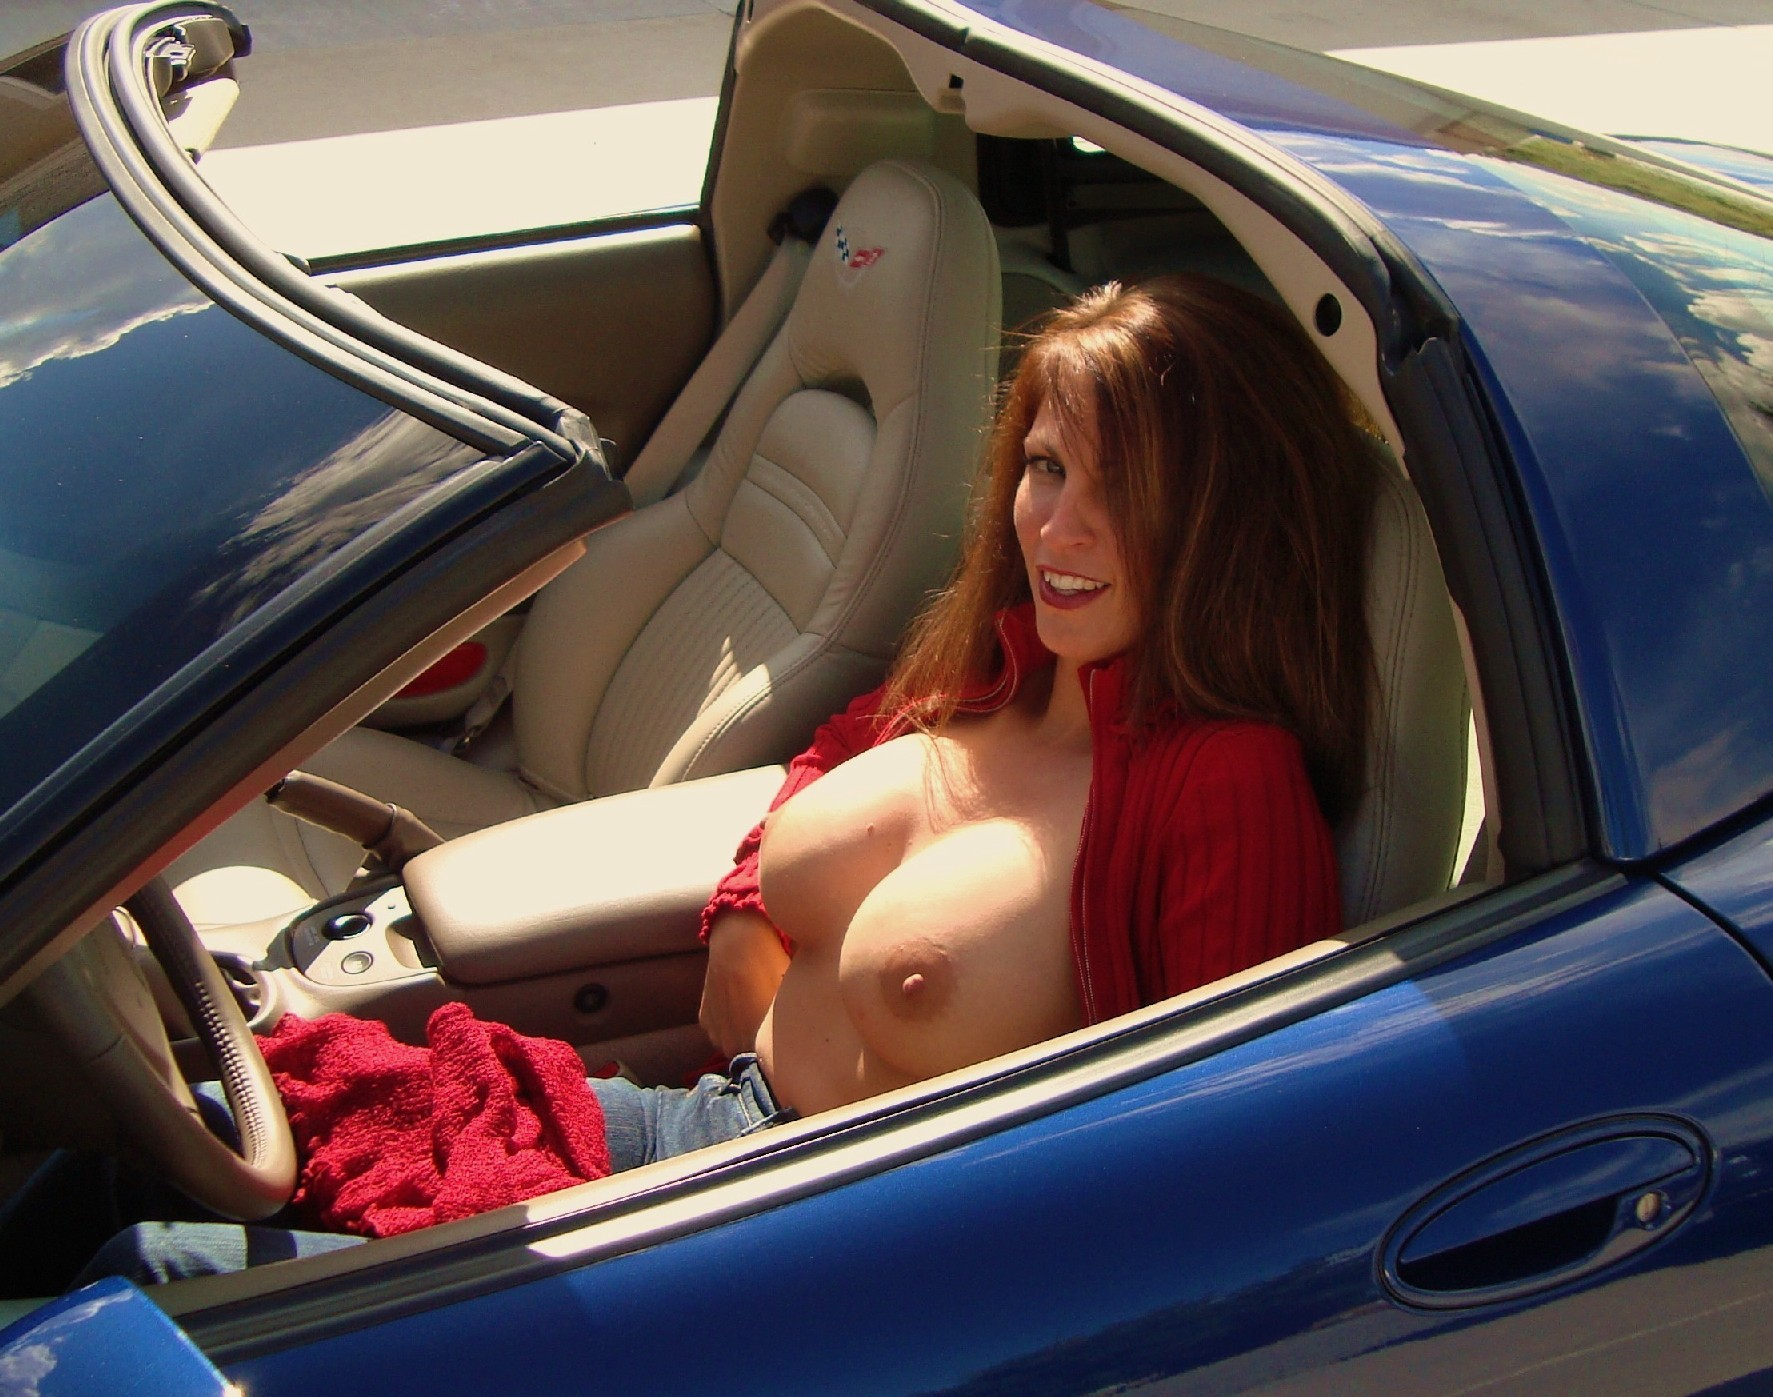 Roma boob show in car